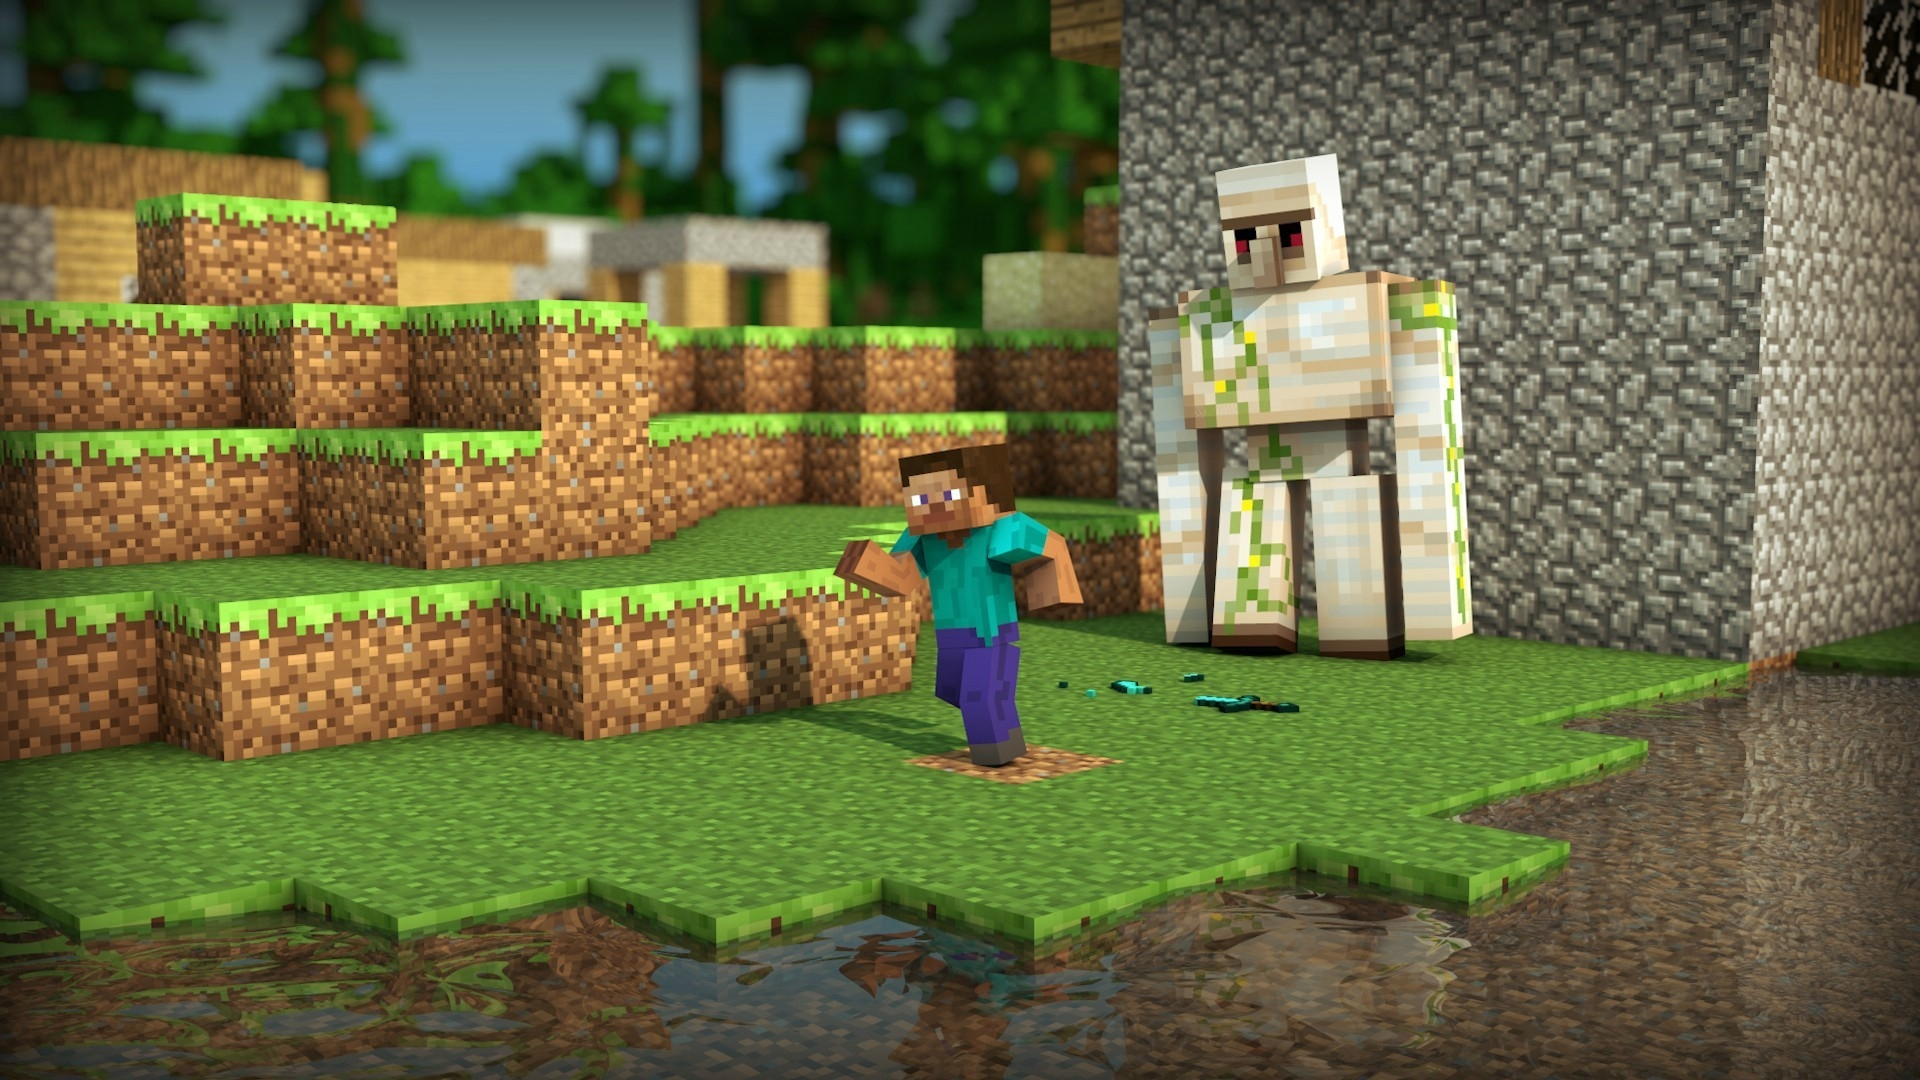 Download Wallpapers Download 2560x1440 iron man minecraft 1920x1080